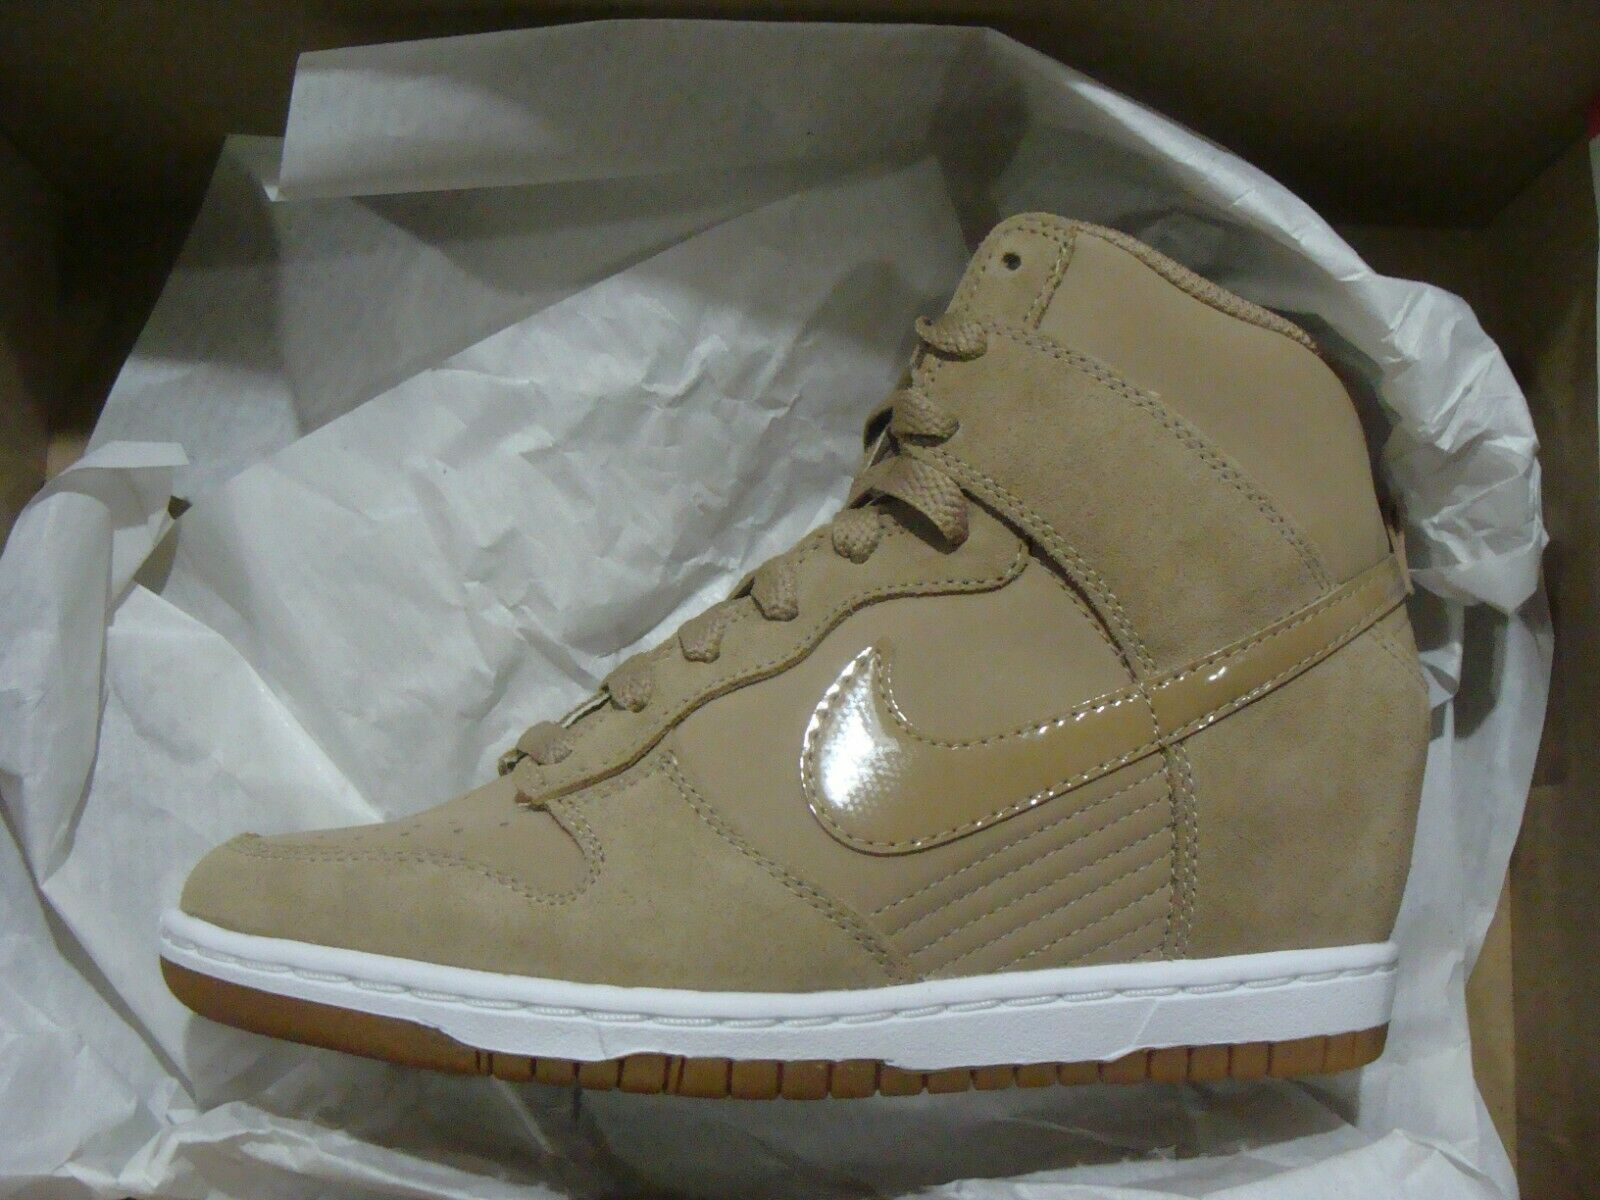 WMNS NIKE DUNK SKY HI ESSENTIAL 644877 200 SIZE 69.5